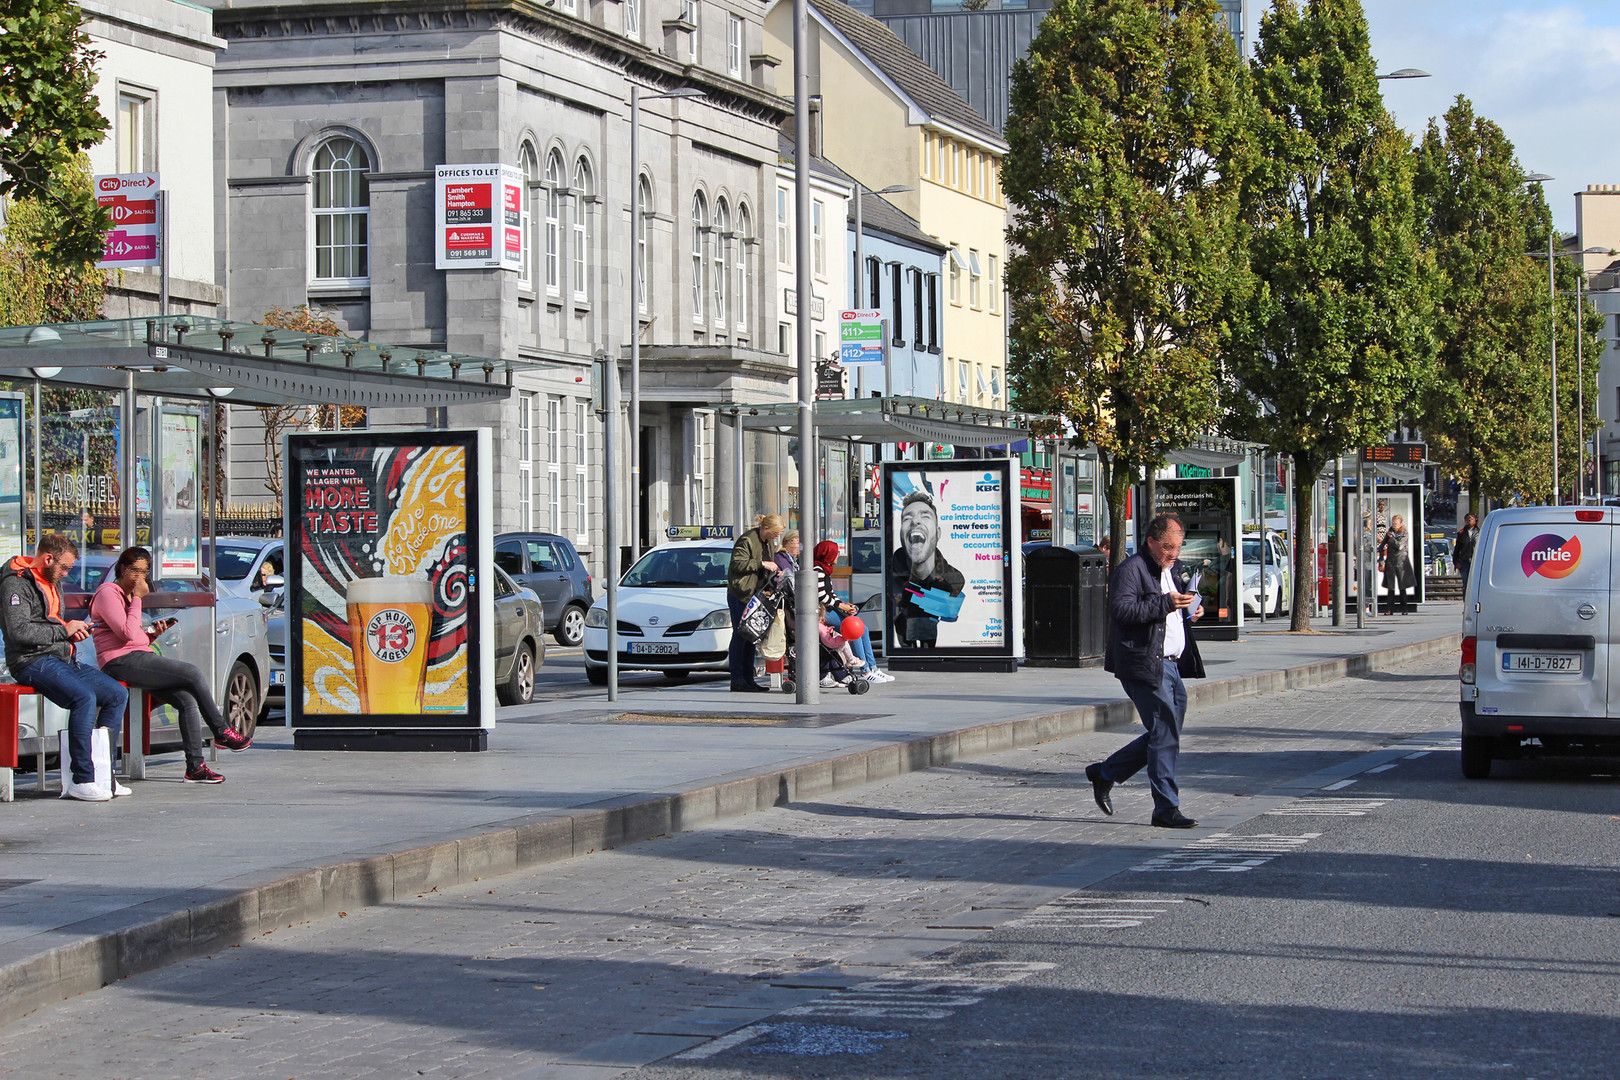 CLEAR CHANNEL - Adshel Eyre Square